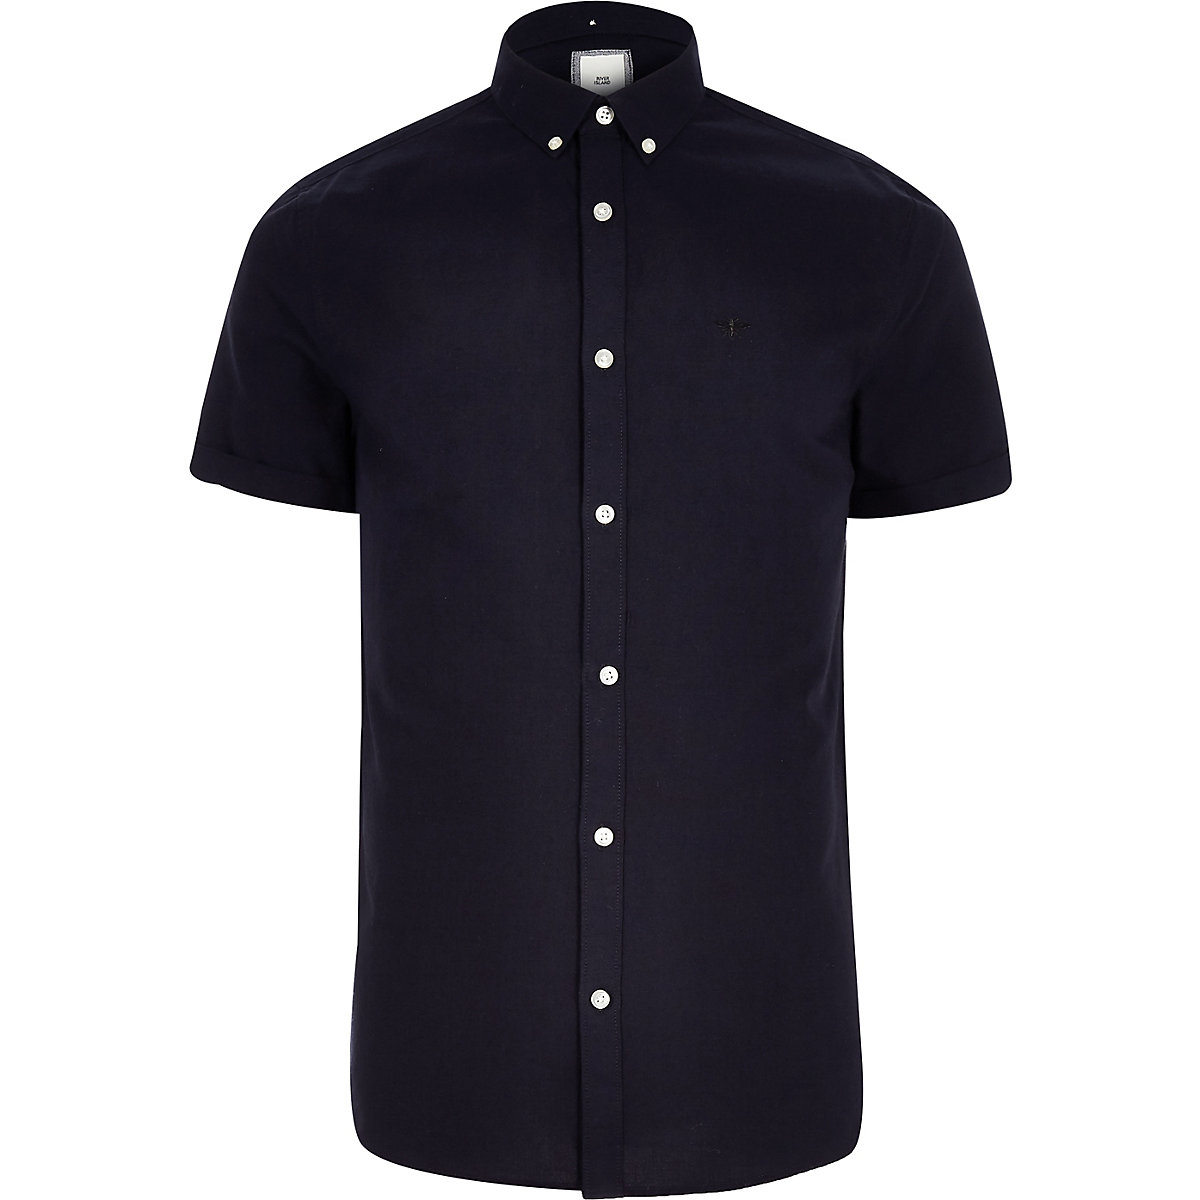 Navy embroidered short sleeve Oxford shirt